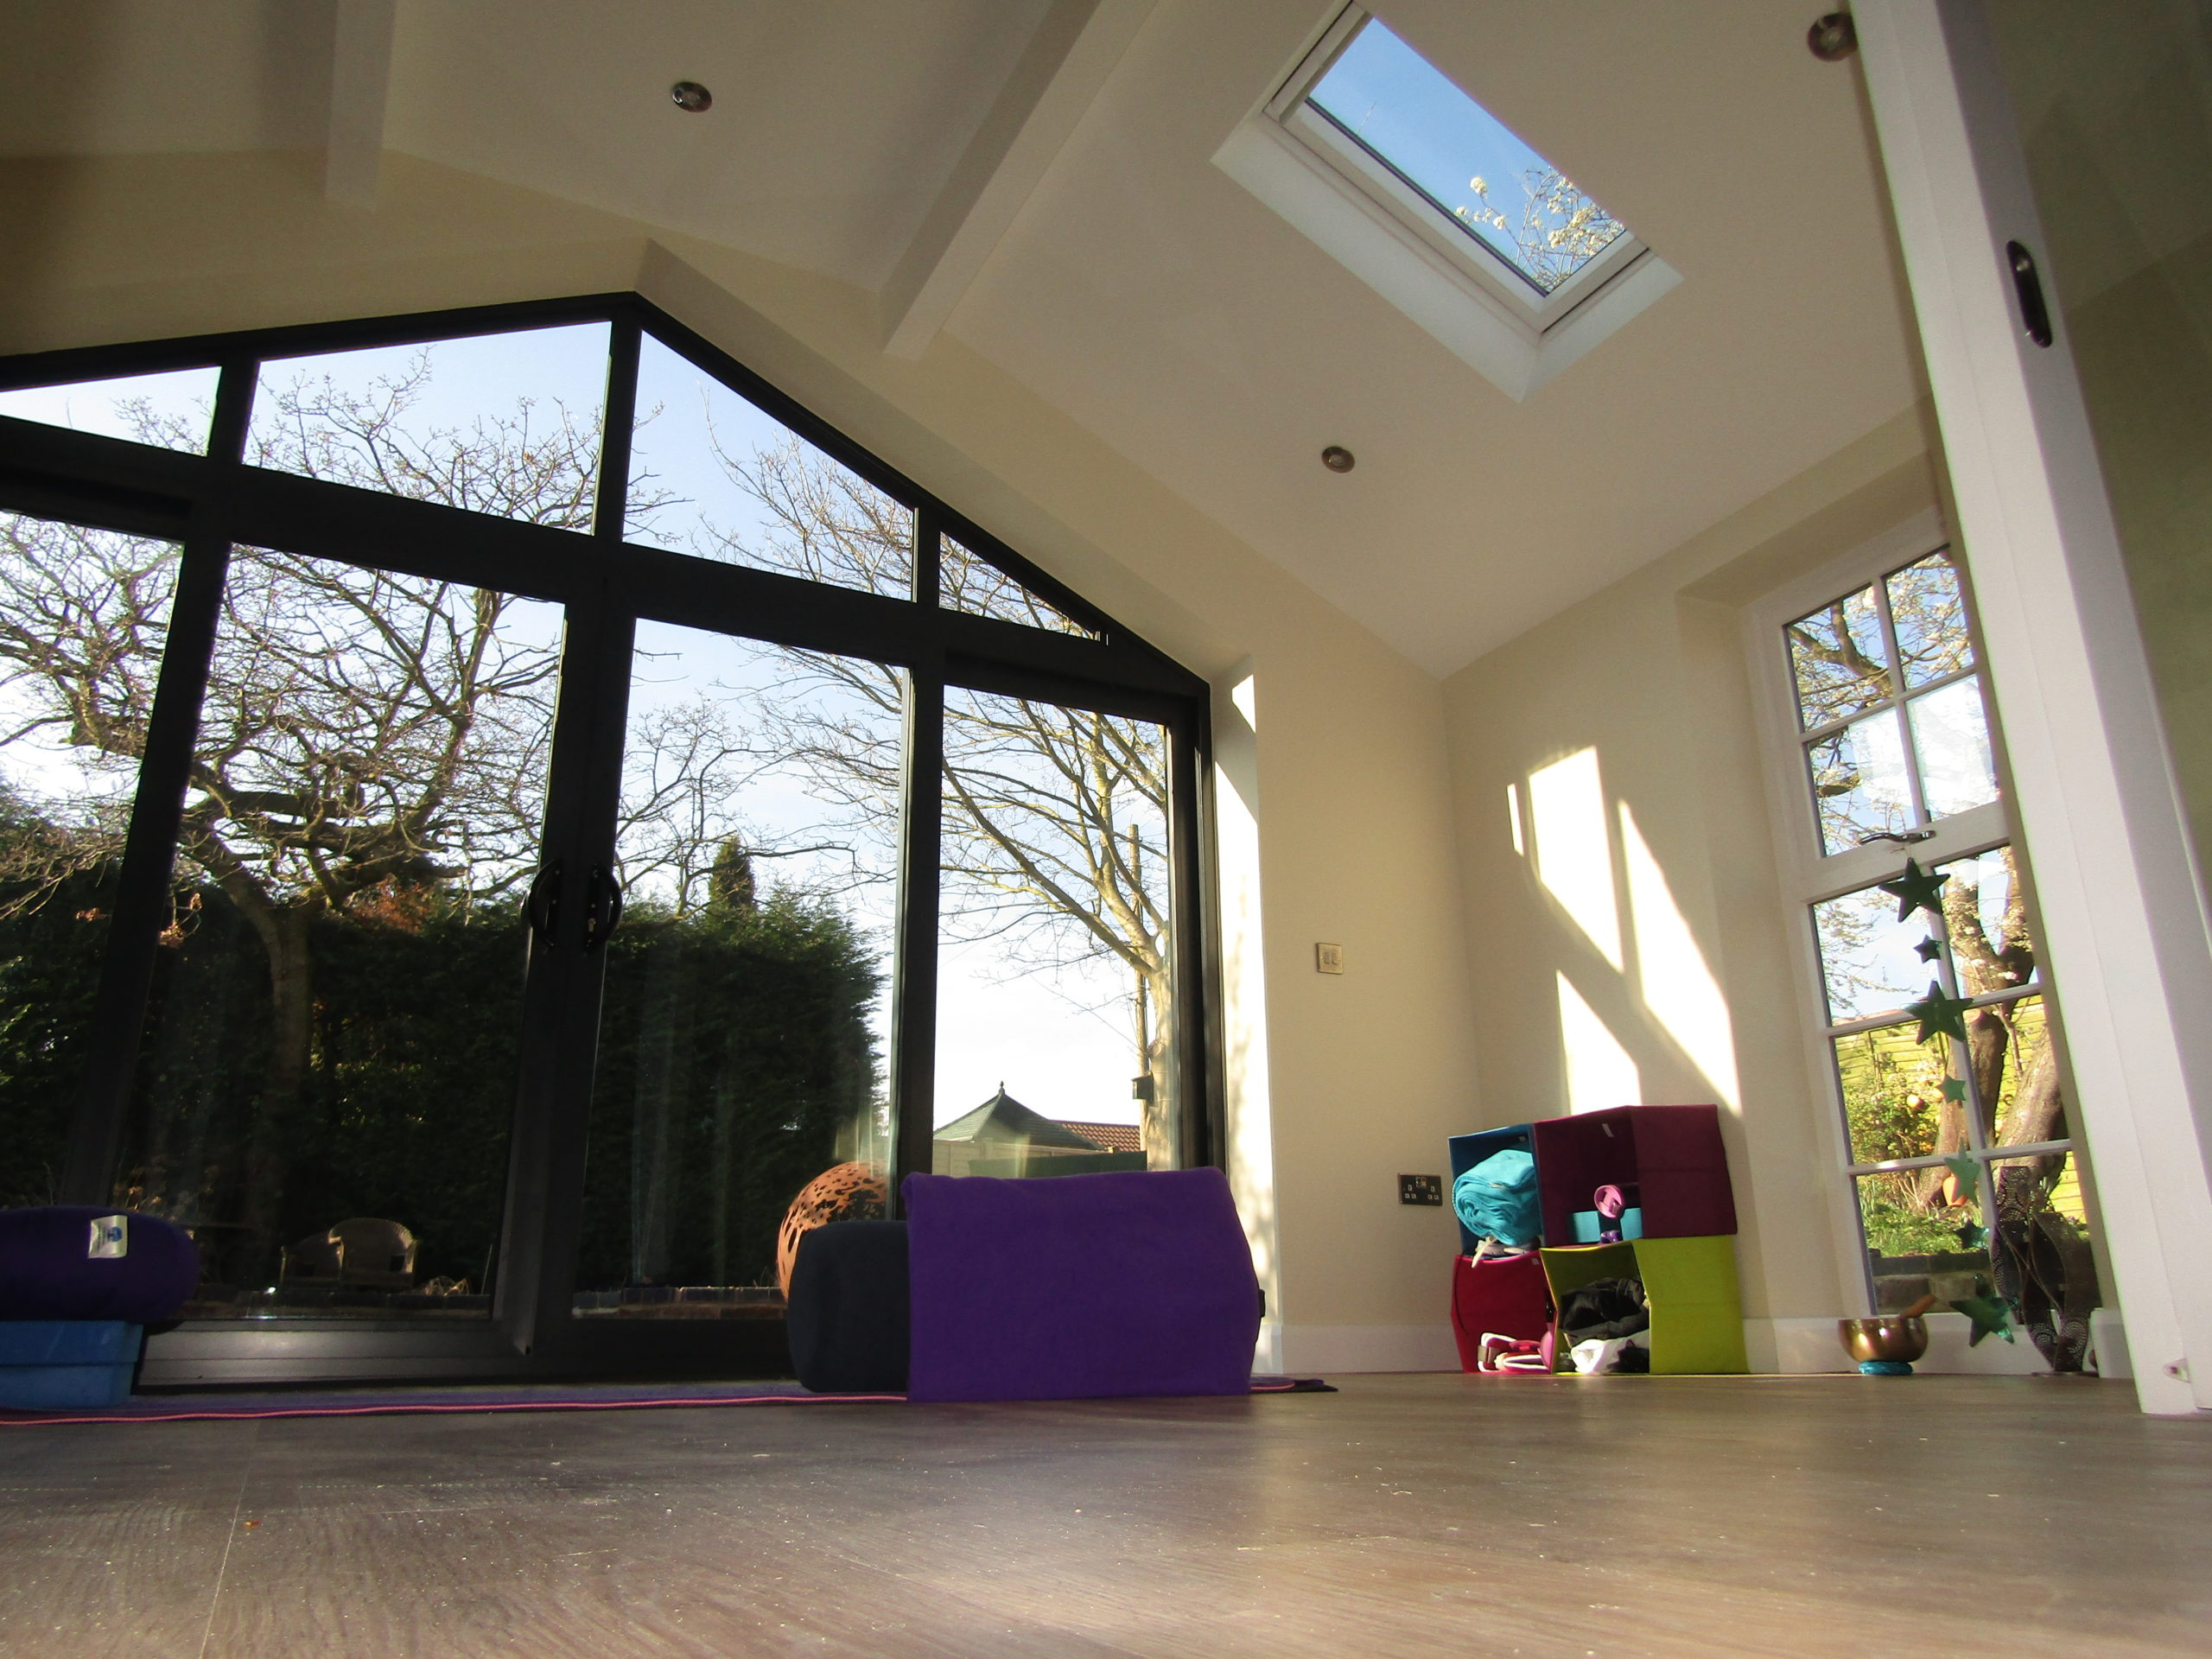 ceiling view of garage conversion with skylight